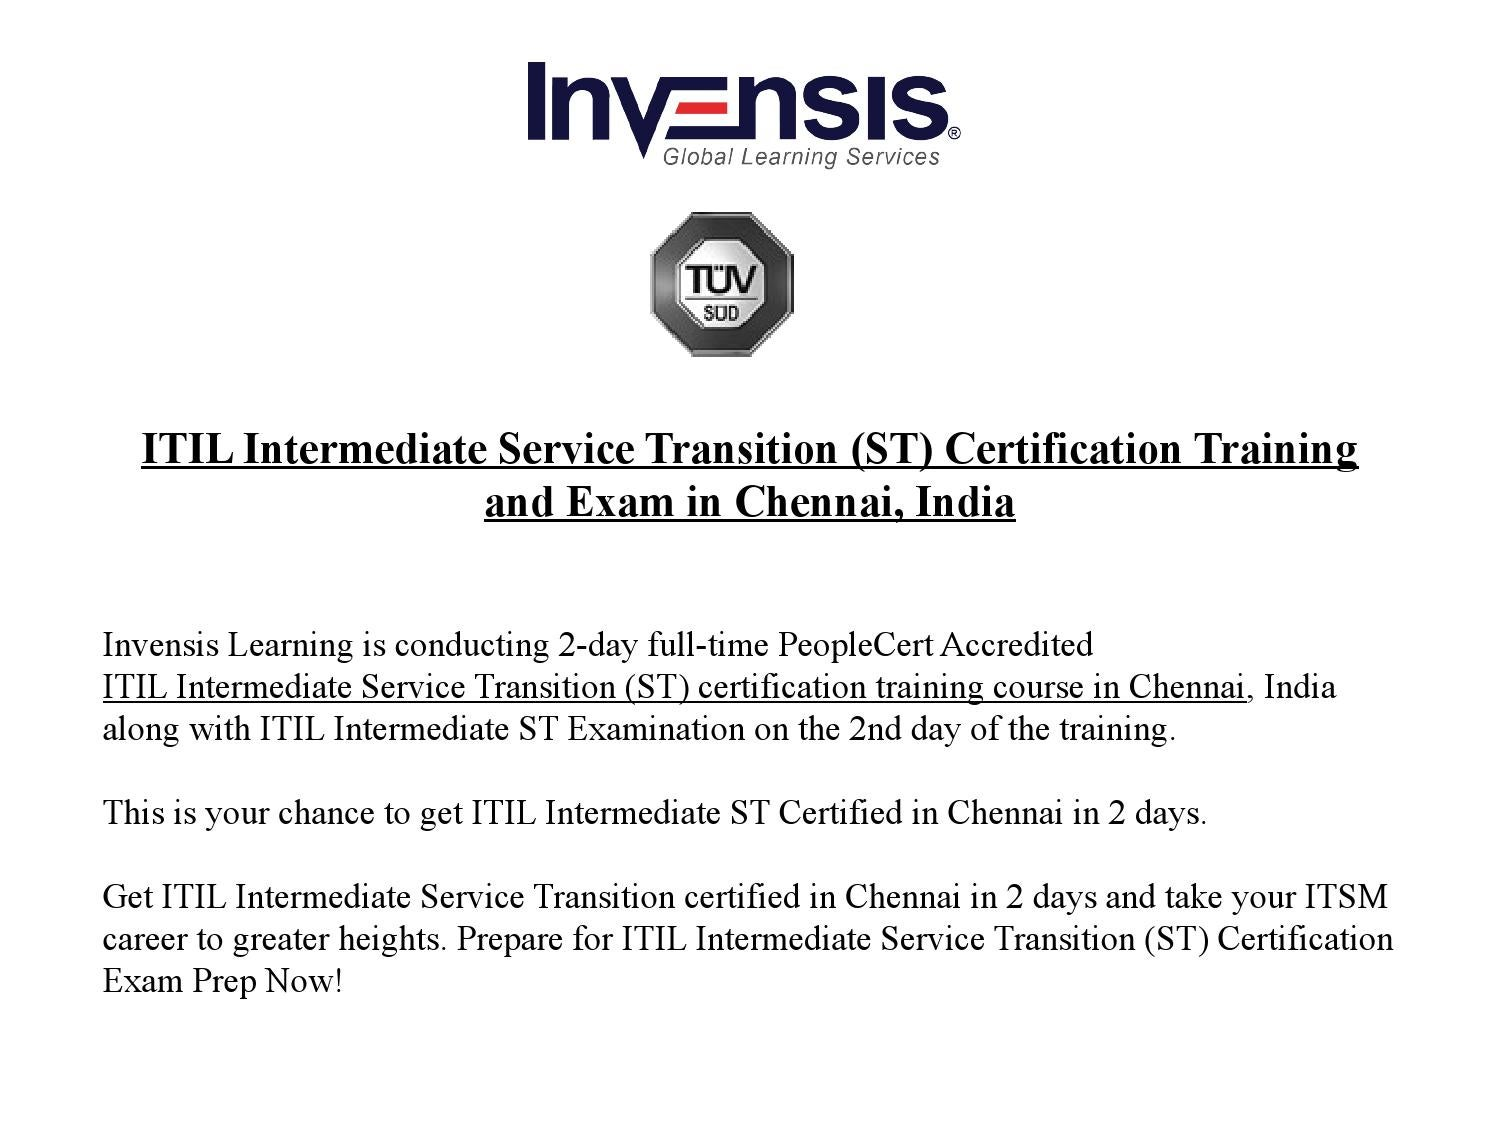 Itil Intermediate Service Transition St Certification Training And